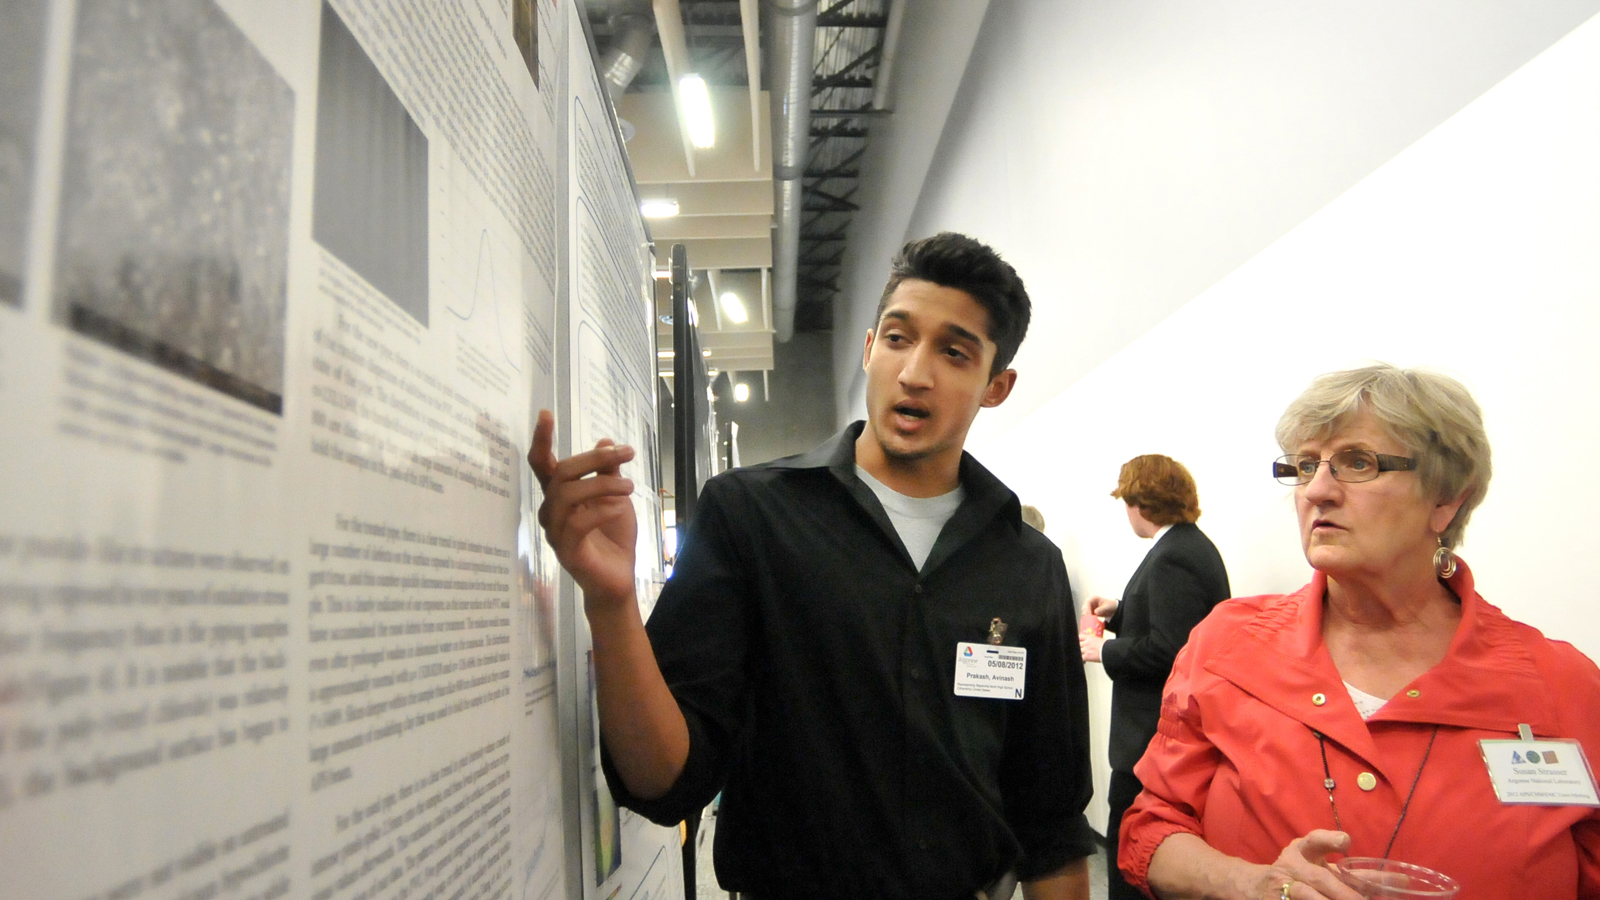 """""""The possibilities of science are limitless,"""" said high school senior Avinash Prakash. """"Science is continually growing. Through research we are part of a continuing process."""""""